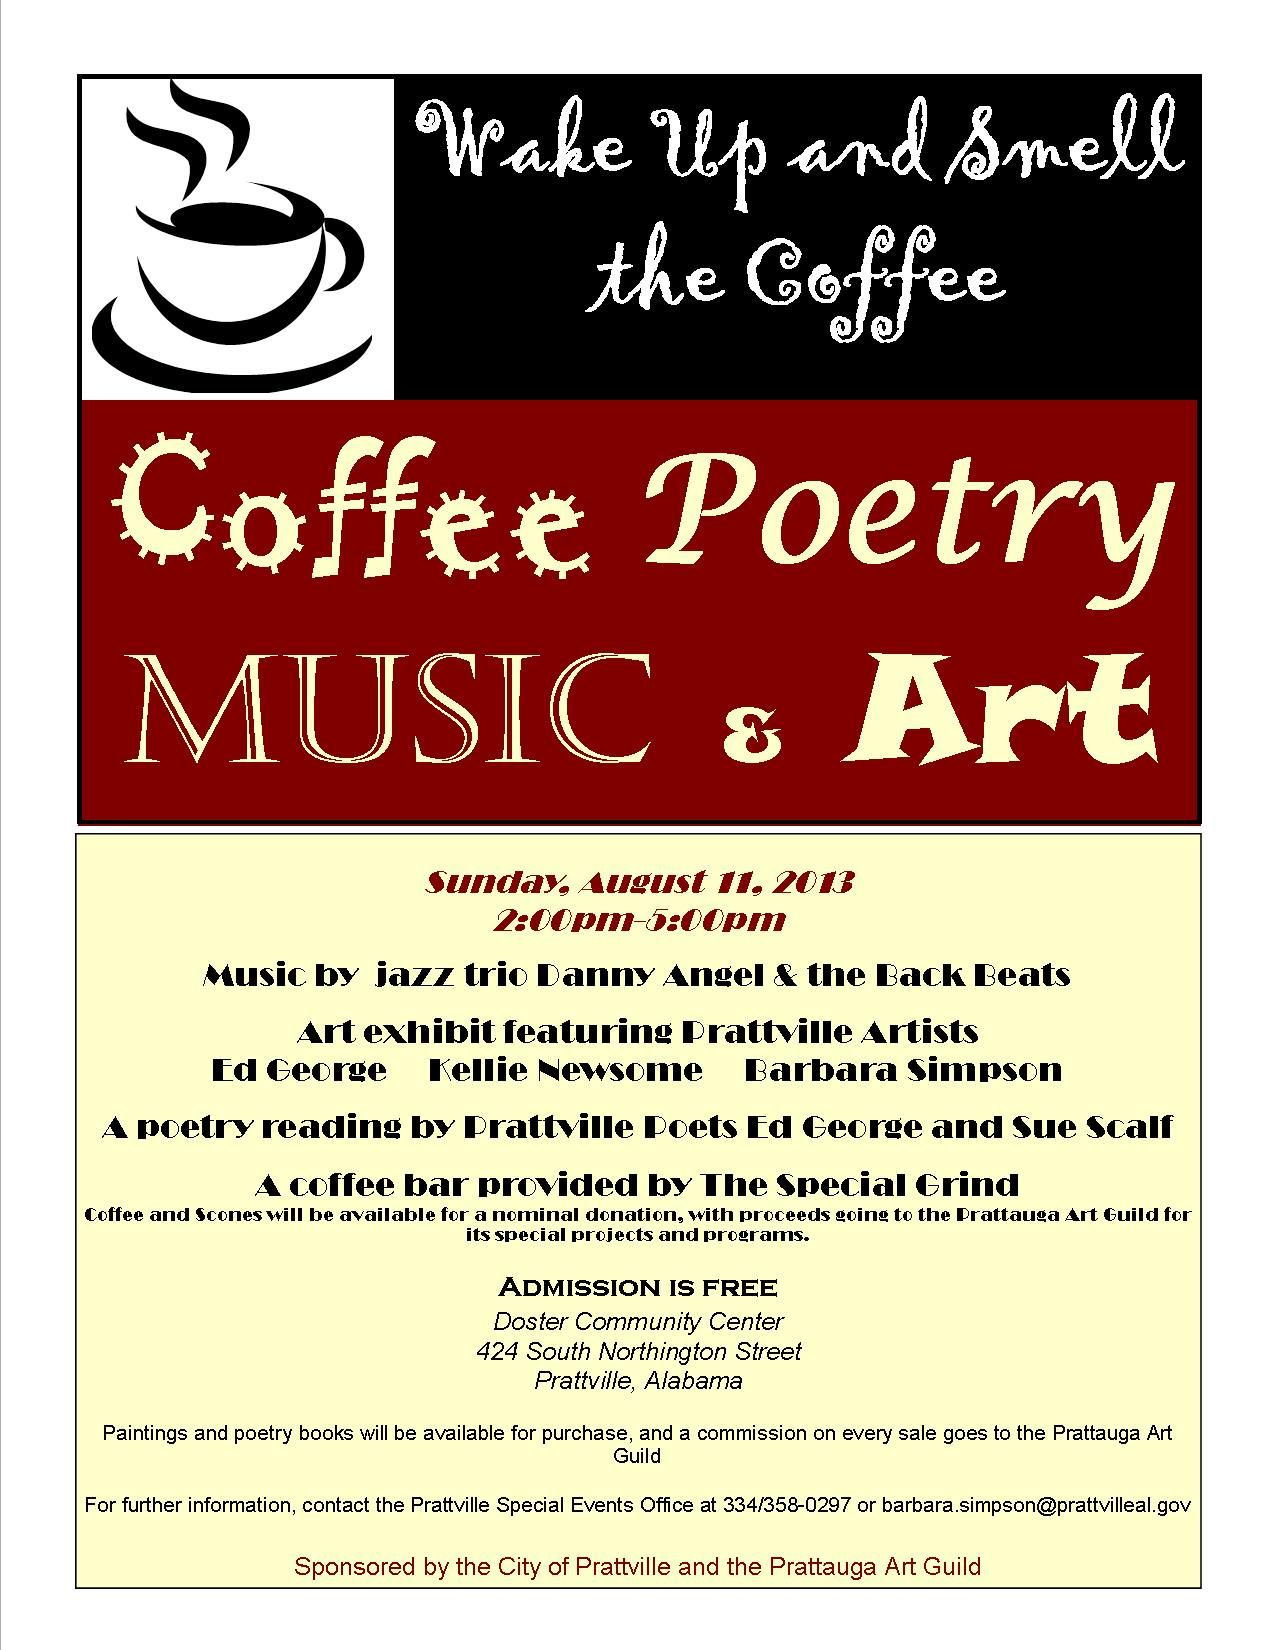 Wake Up and Smell the Coffee...great, fun event combining jazz, art, poetry and good eats!